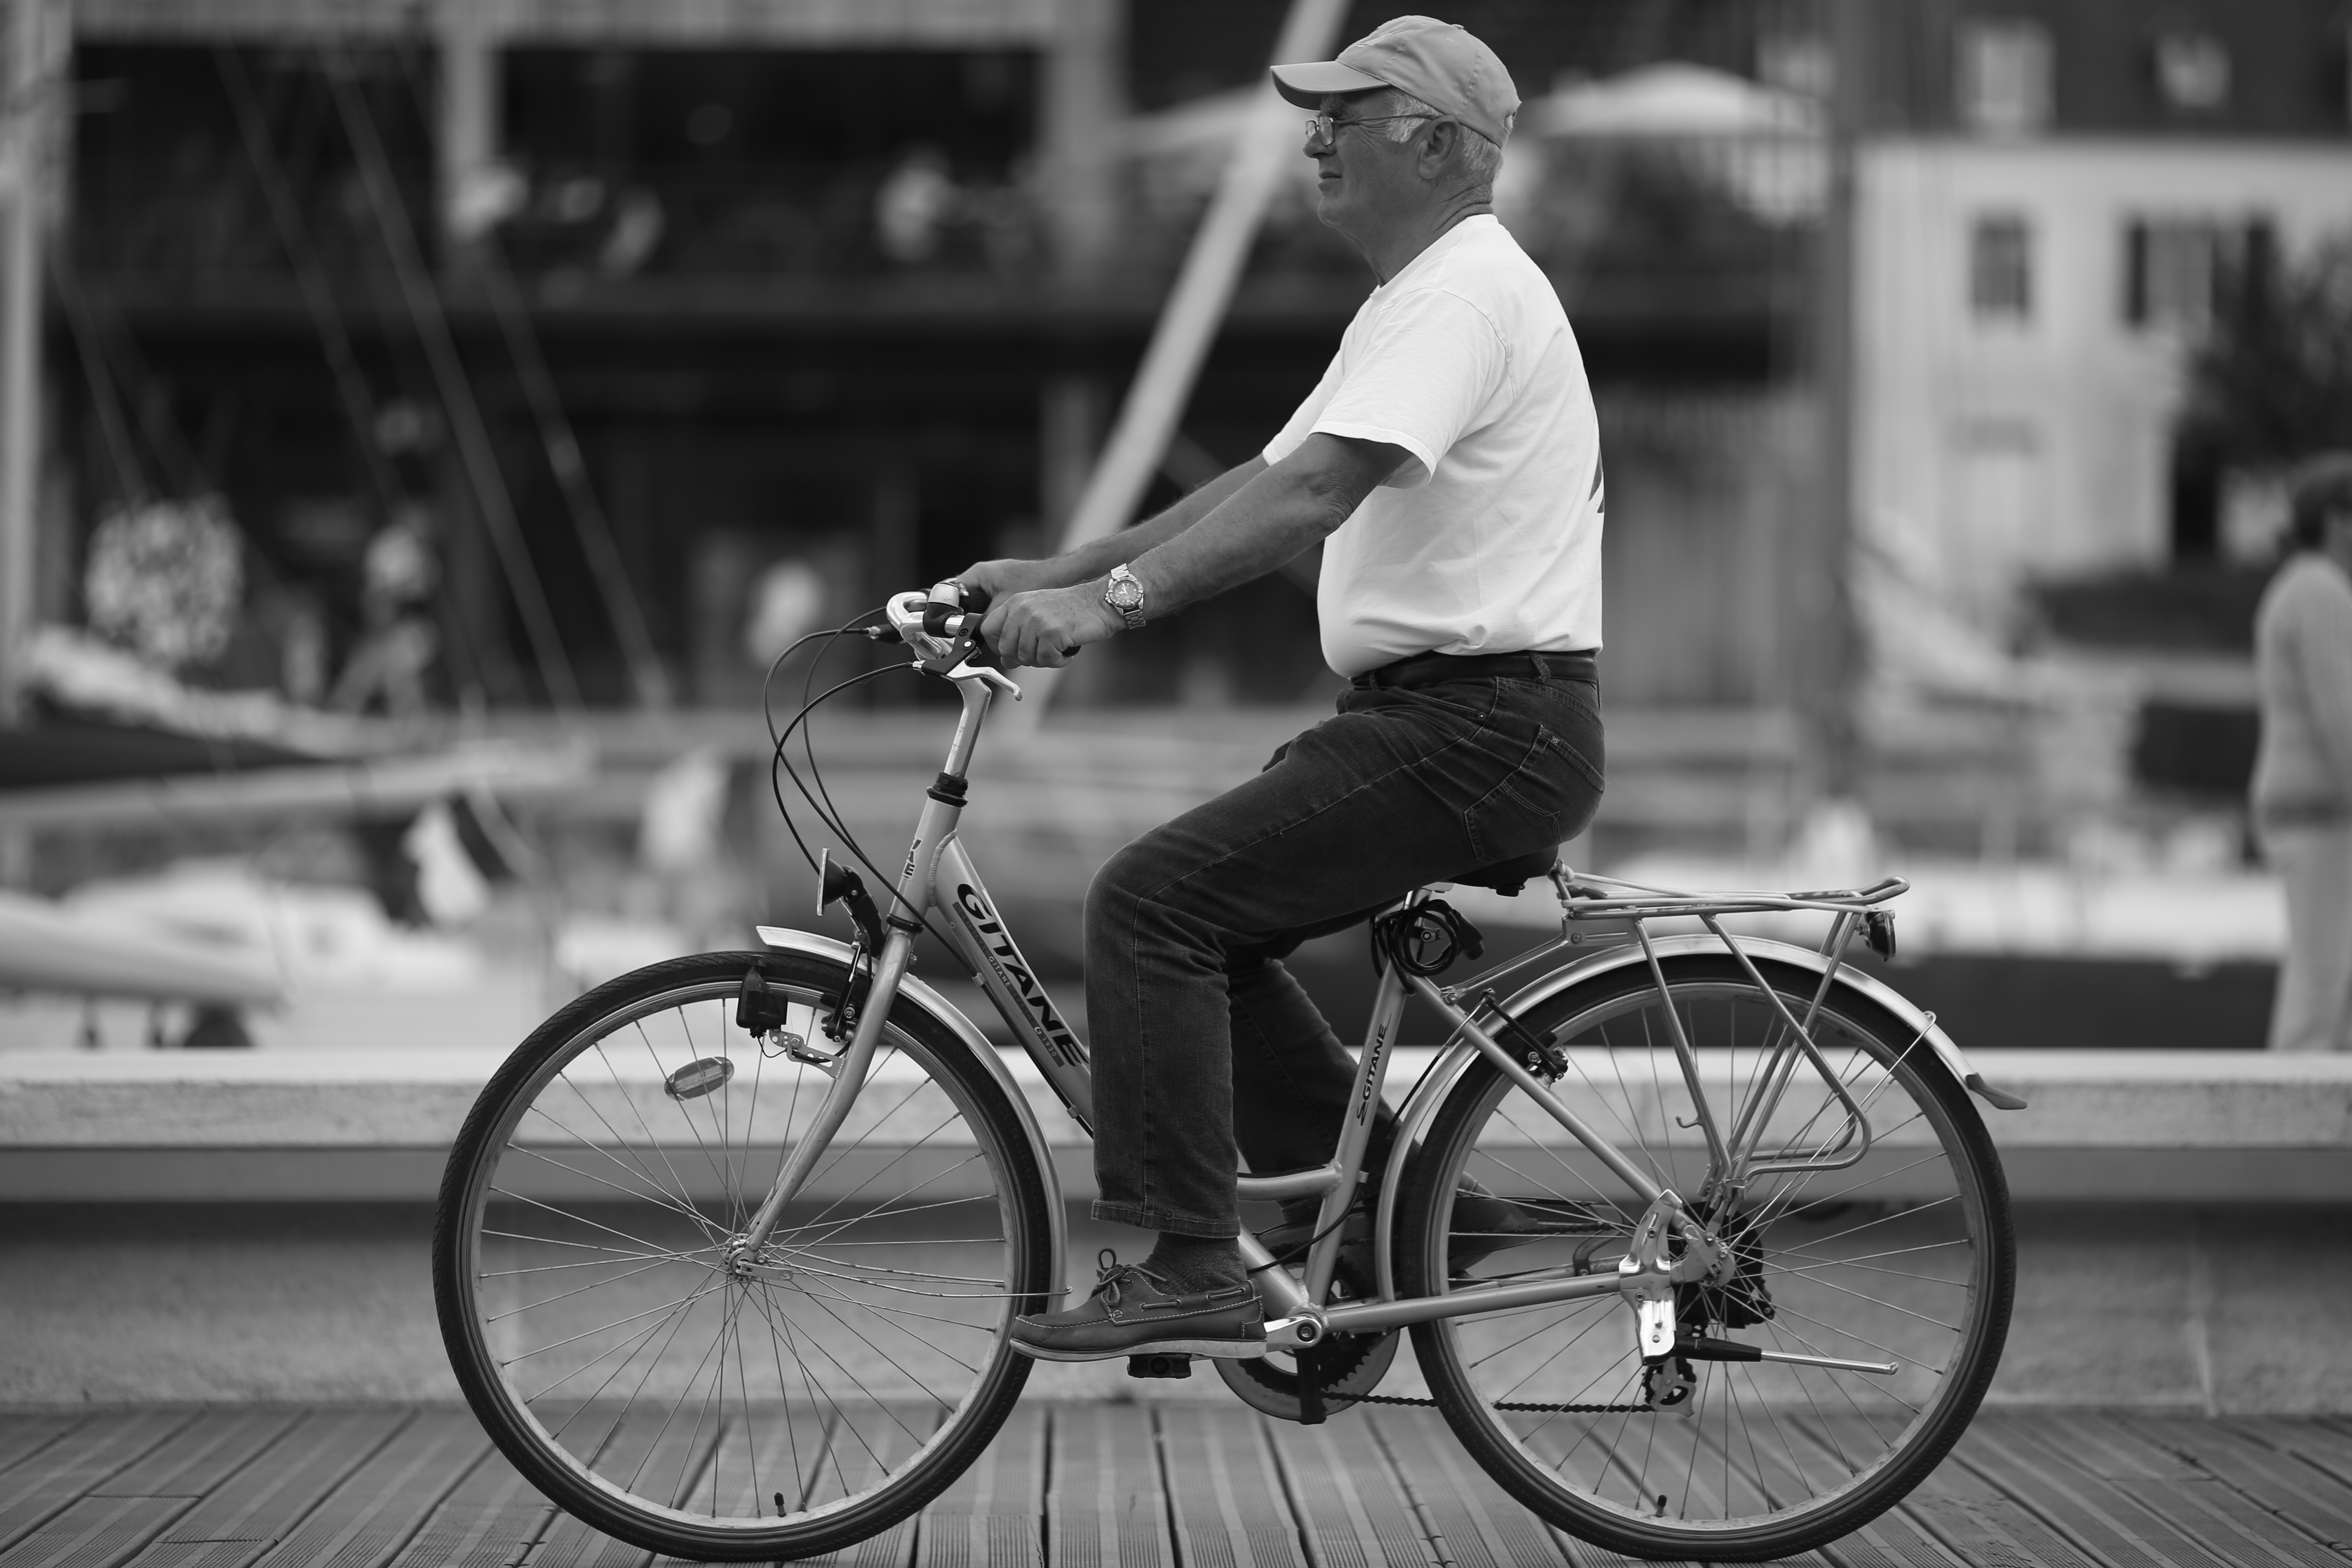 Four Bar Linkages Diagram Of Components On A Bike In French Institute For Man Riding Bicycle At The Port Vannes Brittany North West France Image Source Flickr By Alexandre Dulaunoy Cc 20